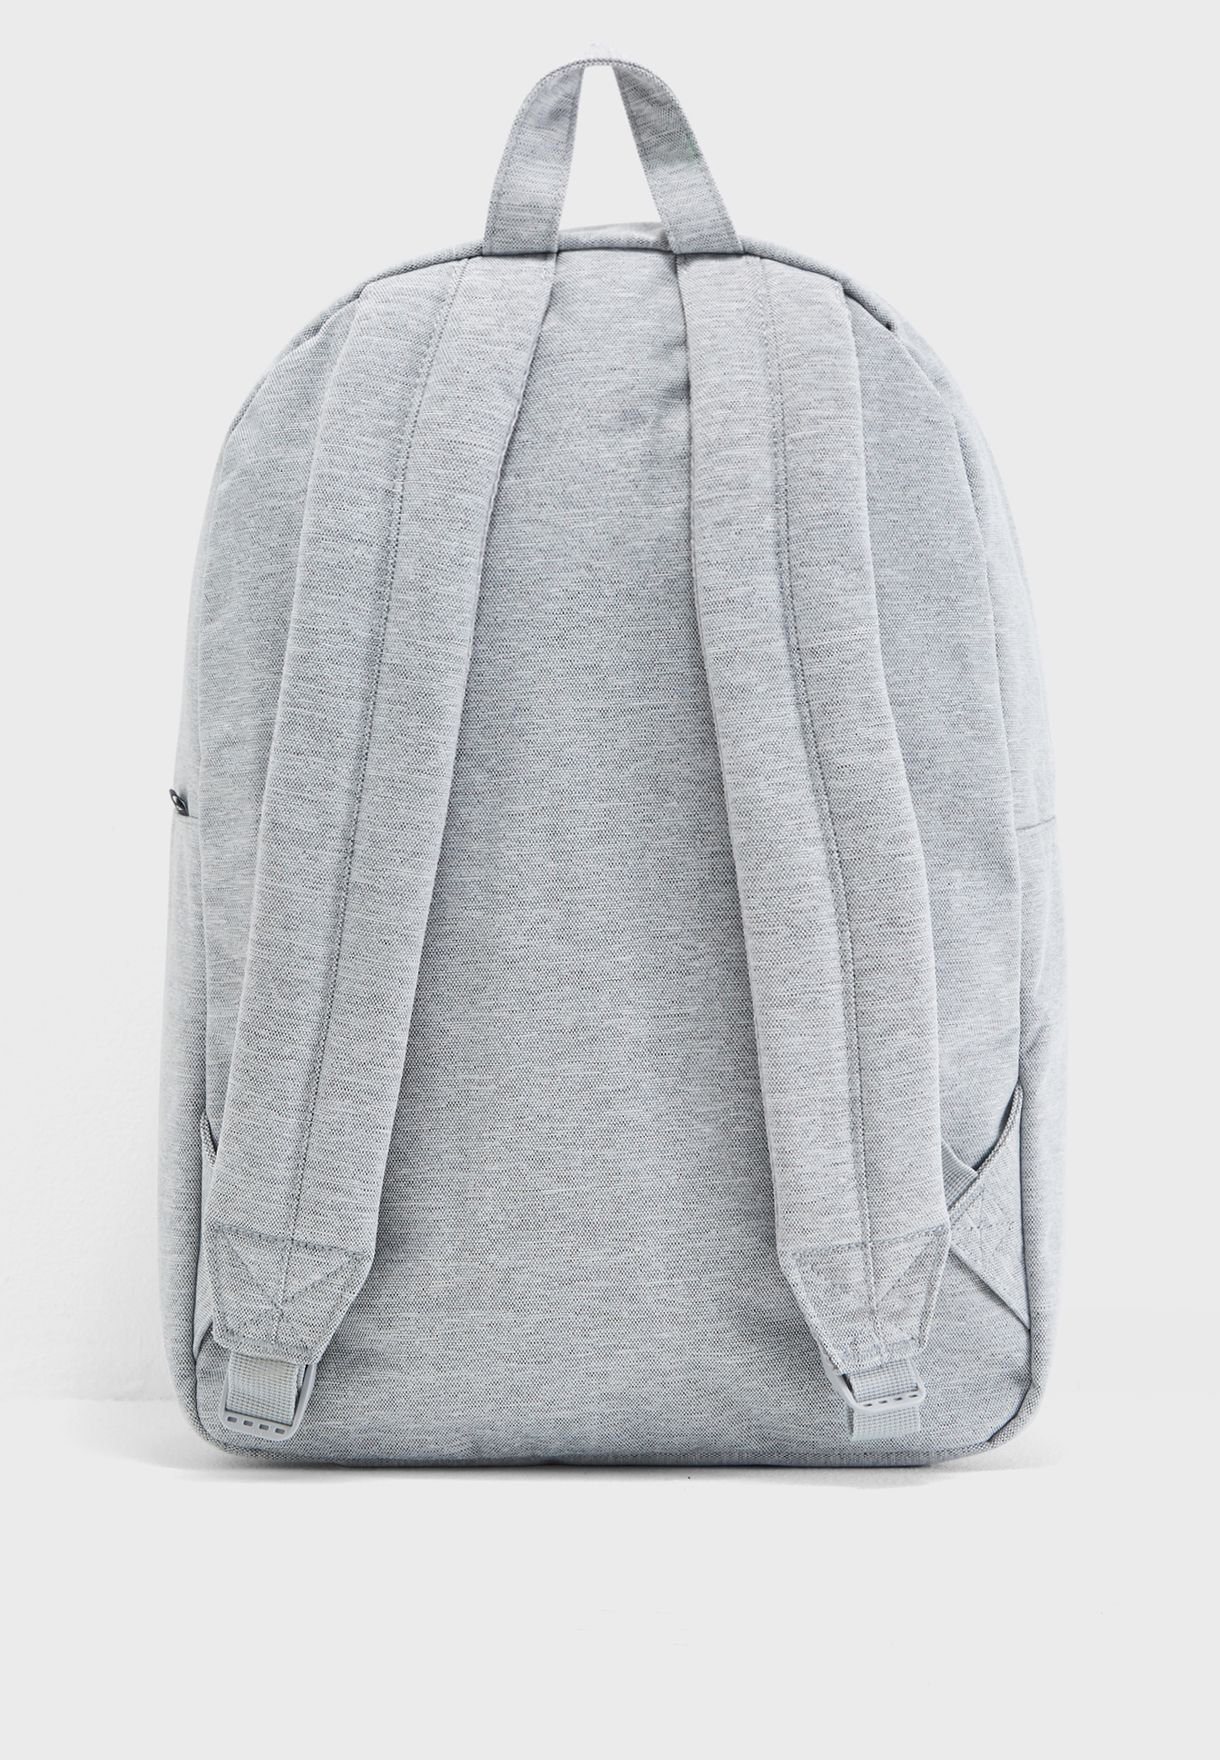 f2bbf71ad07 Shop Herschel grey Classic Backpack 10001-01866-OS for Women in ...